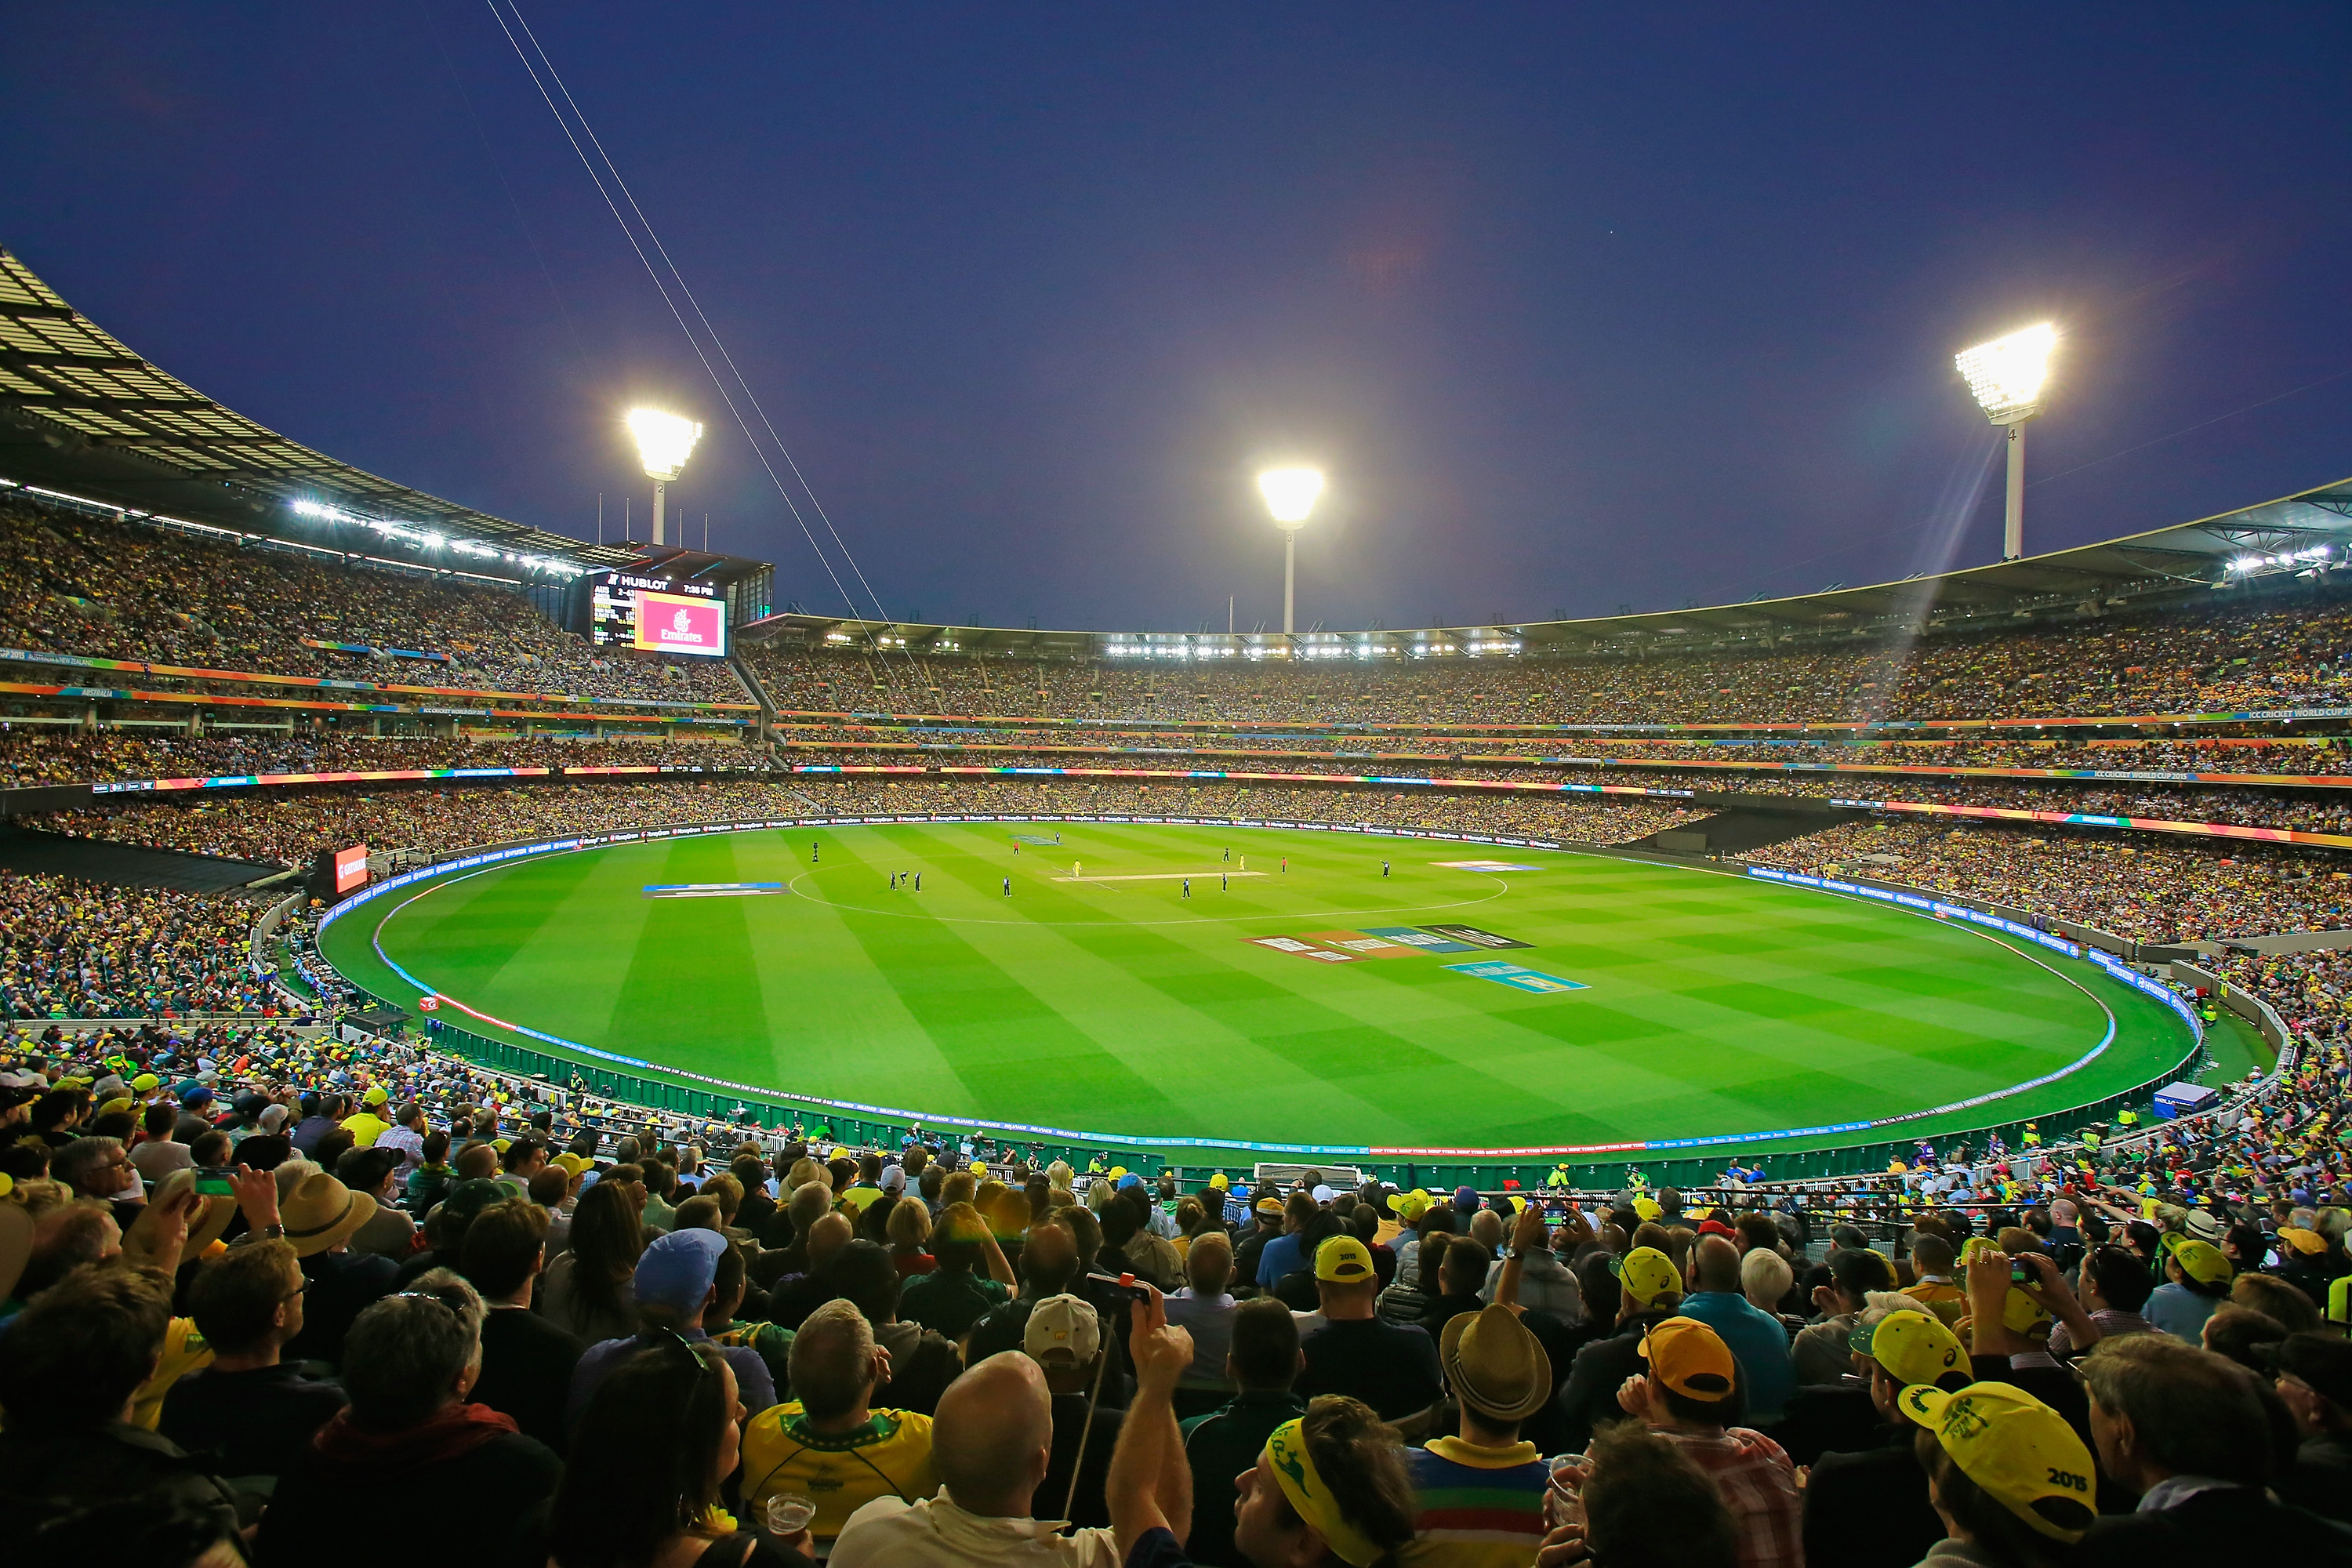 New tickets released for ICC Women's T20 World Cup Final at MCG